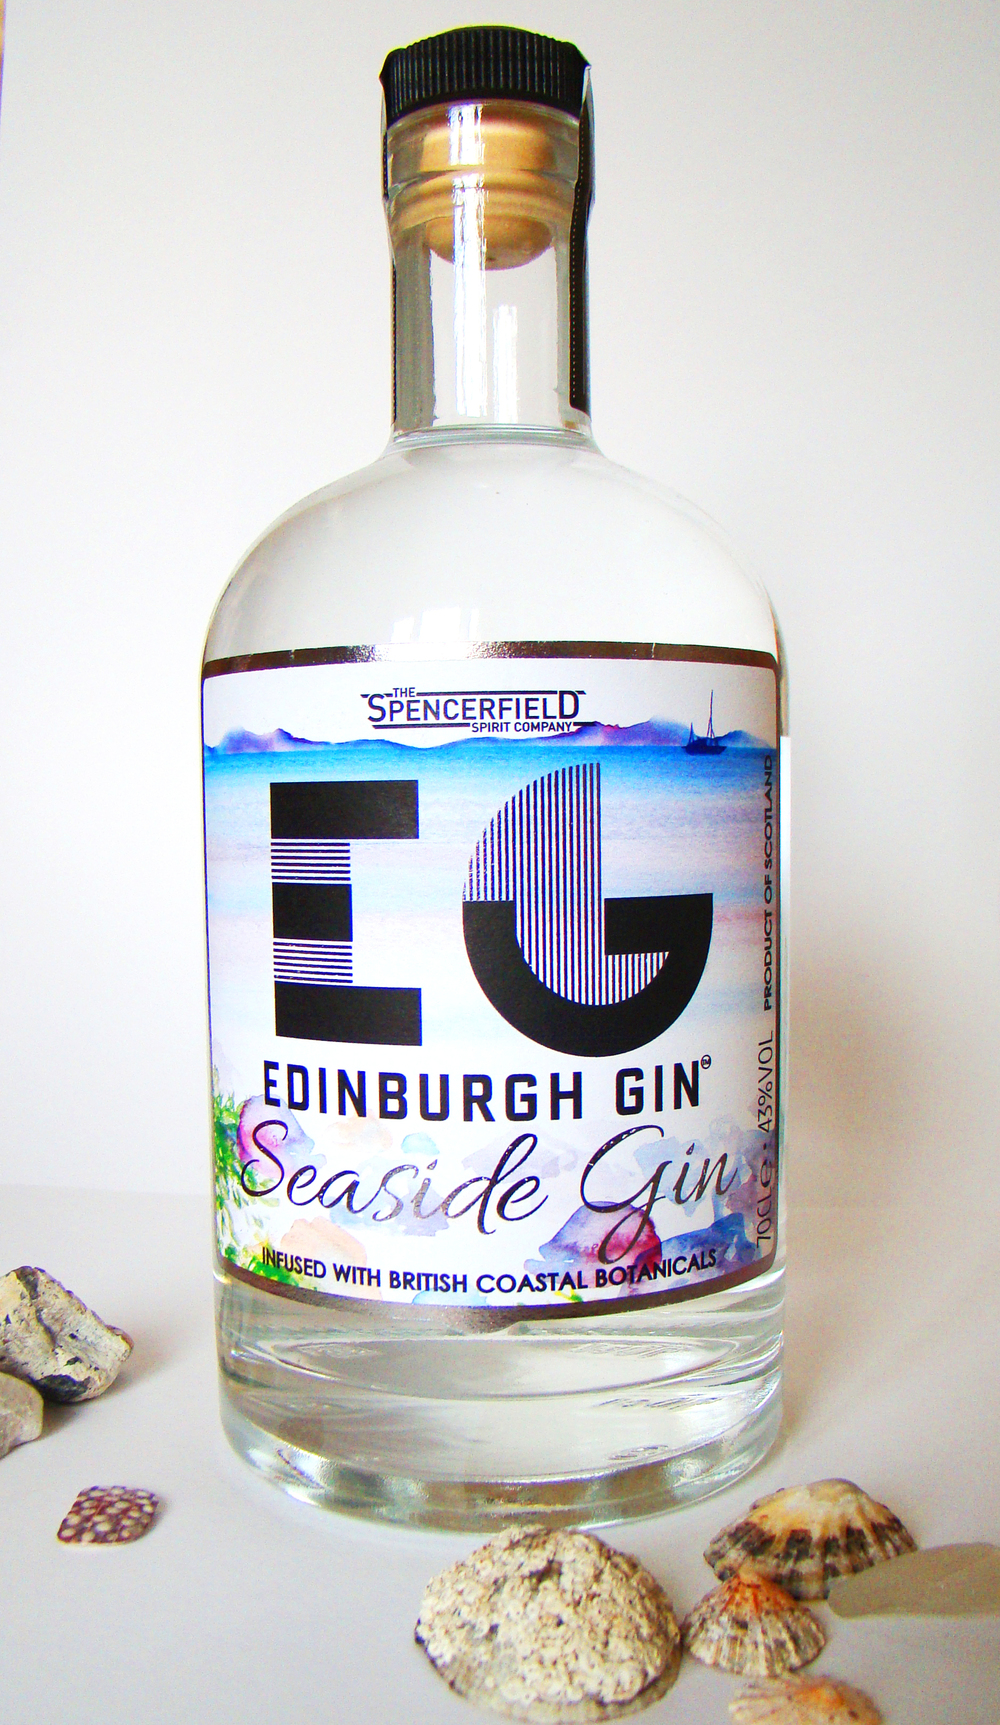 A commission for a limited edition bottle of Seaside Gin for Edinburgh Gin, by  Spencerfield Spirit Company.